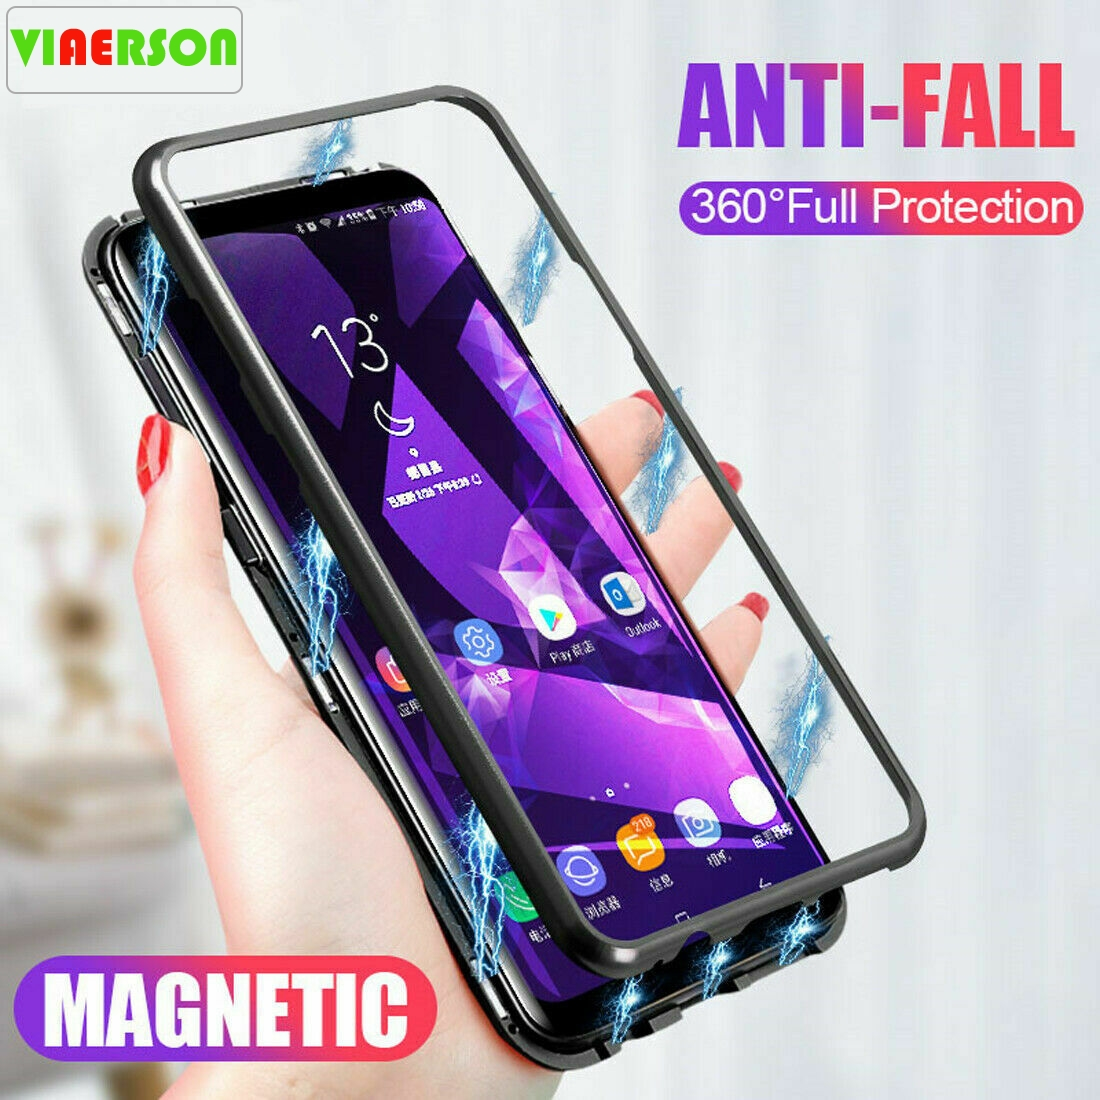 360 Magnetic Adsorption Case for Huawei P30 P20 Lite P10 Plus Nova 2S 2i 3 3i 3e 4 4e Y6 Prime 2018 Y9 2019 Mate 10 20 20X Cases image